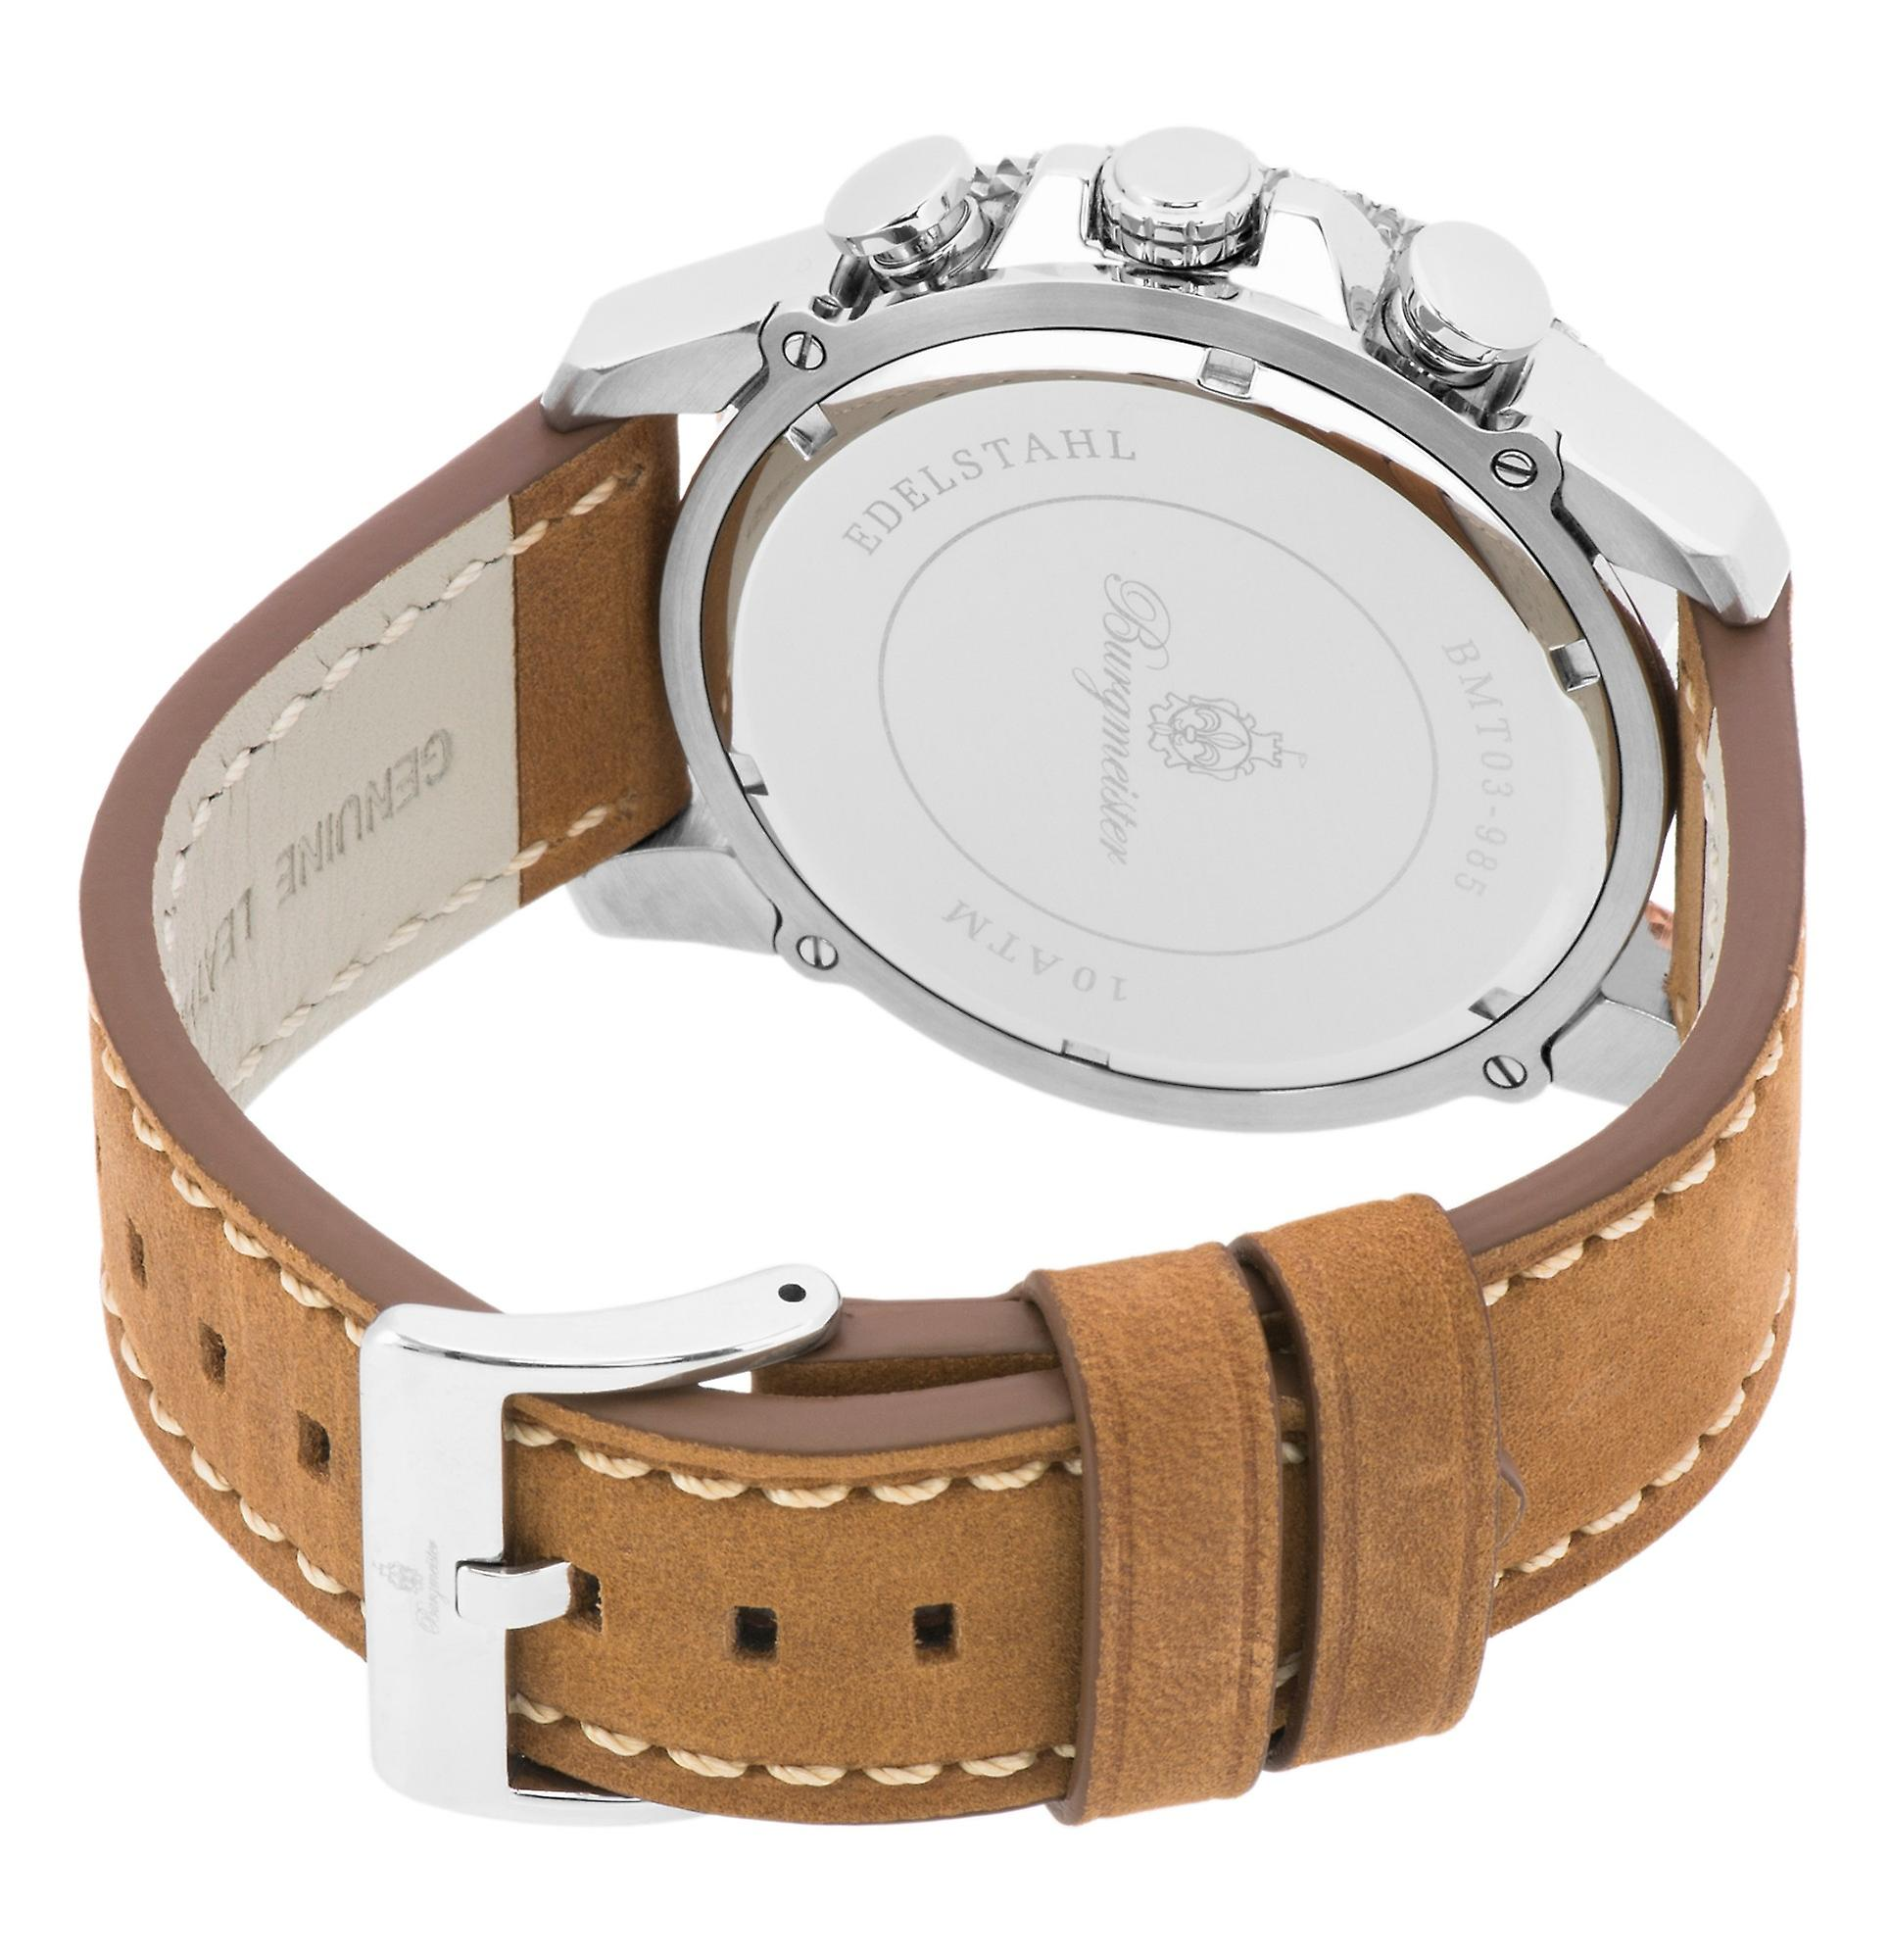 Burgmeister gents chronograph Narbonne, BMT03-985